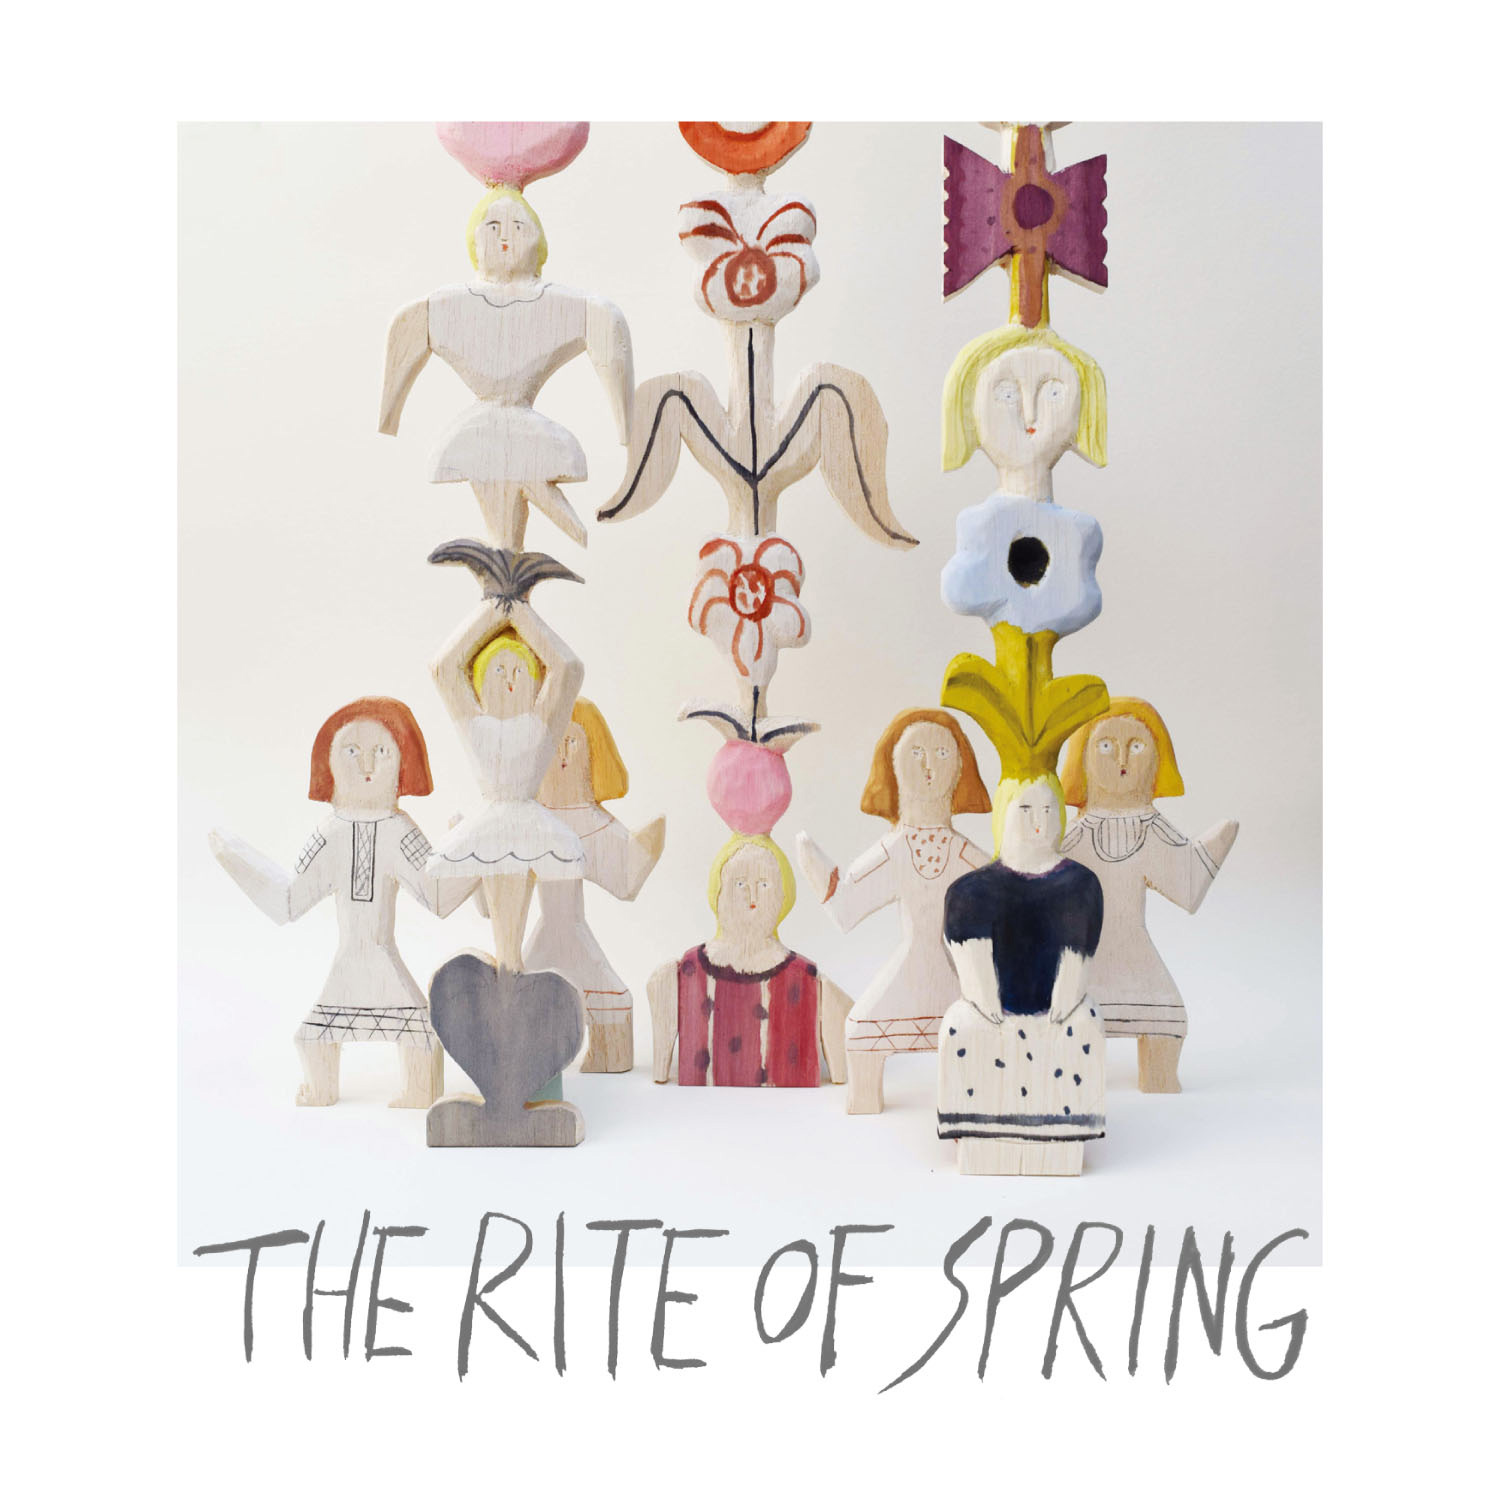 菅祐子個展 The Rite of Spring at nidi gallery